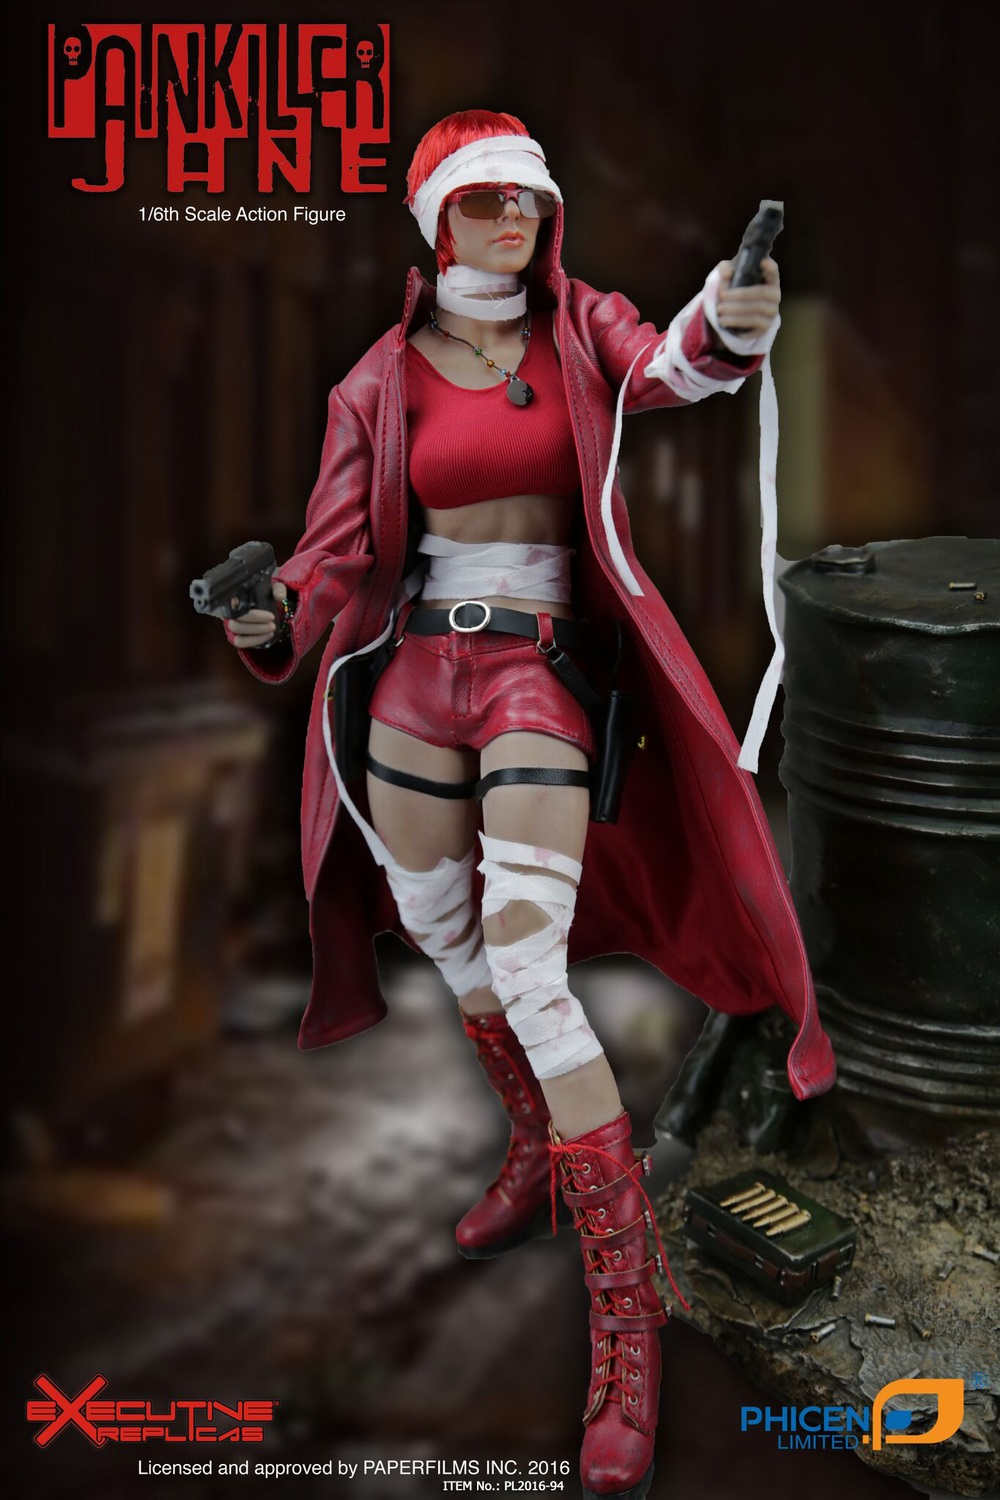 1/6th scale figure Collectible Model plastic toy female Painkiller Jane Seamless body with Metal skeleton 12 Action figure doll 1 6 scale model metal gear solid v the phantom d dog diamond dog about 23cm collectible figure model toy gift